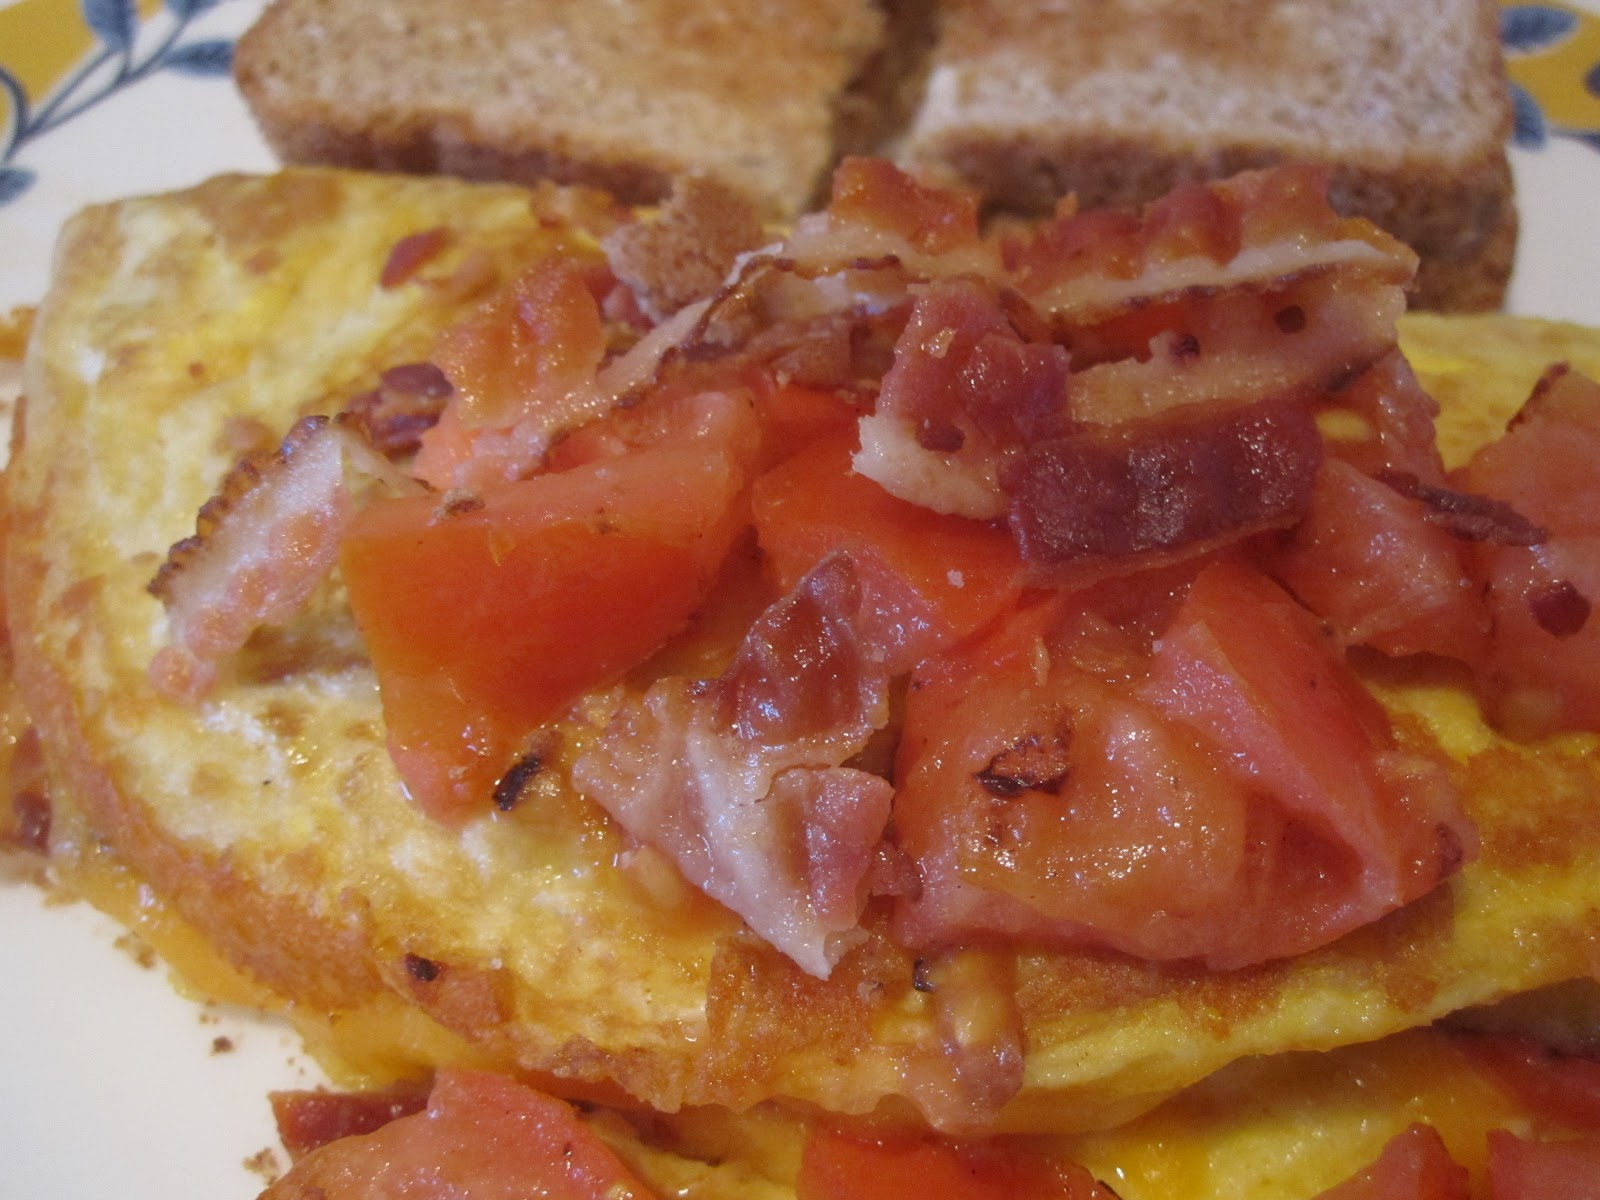 Neighbor Julia: Tomato, Bacon and Cheddar omelet